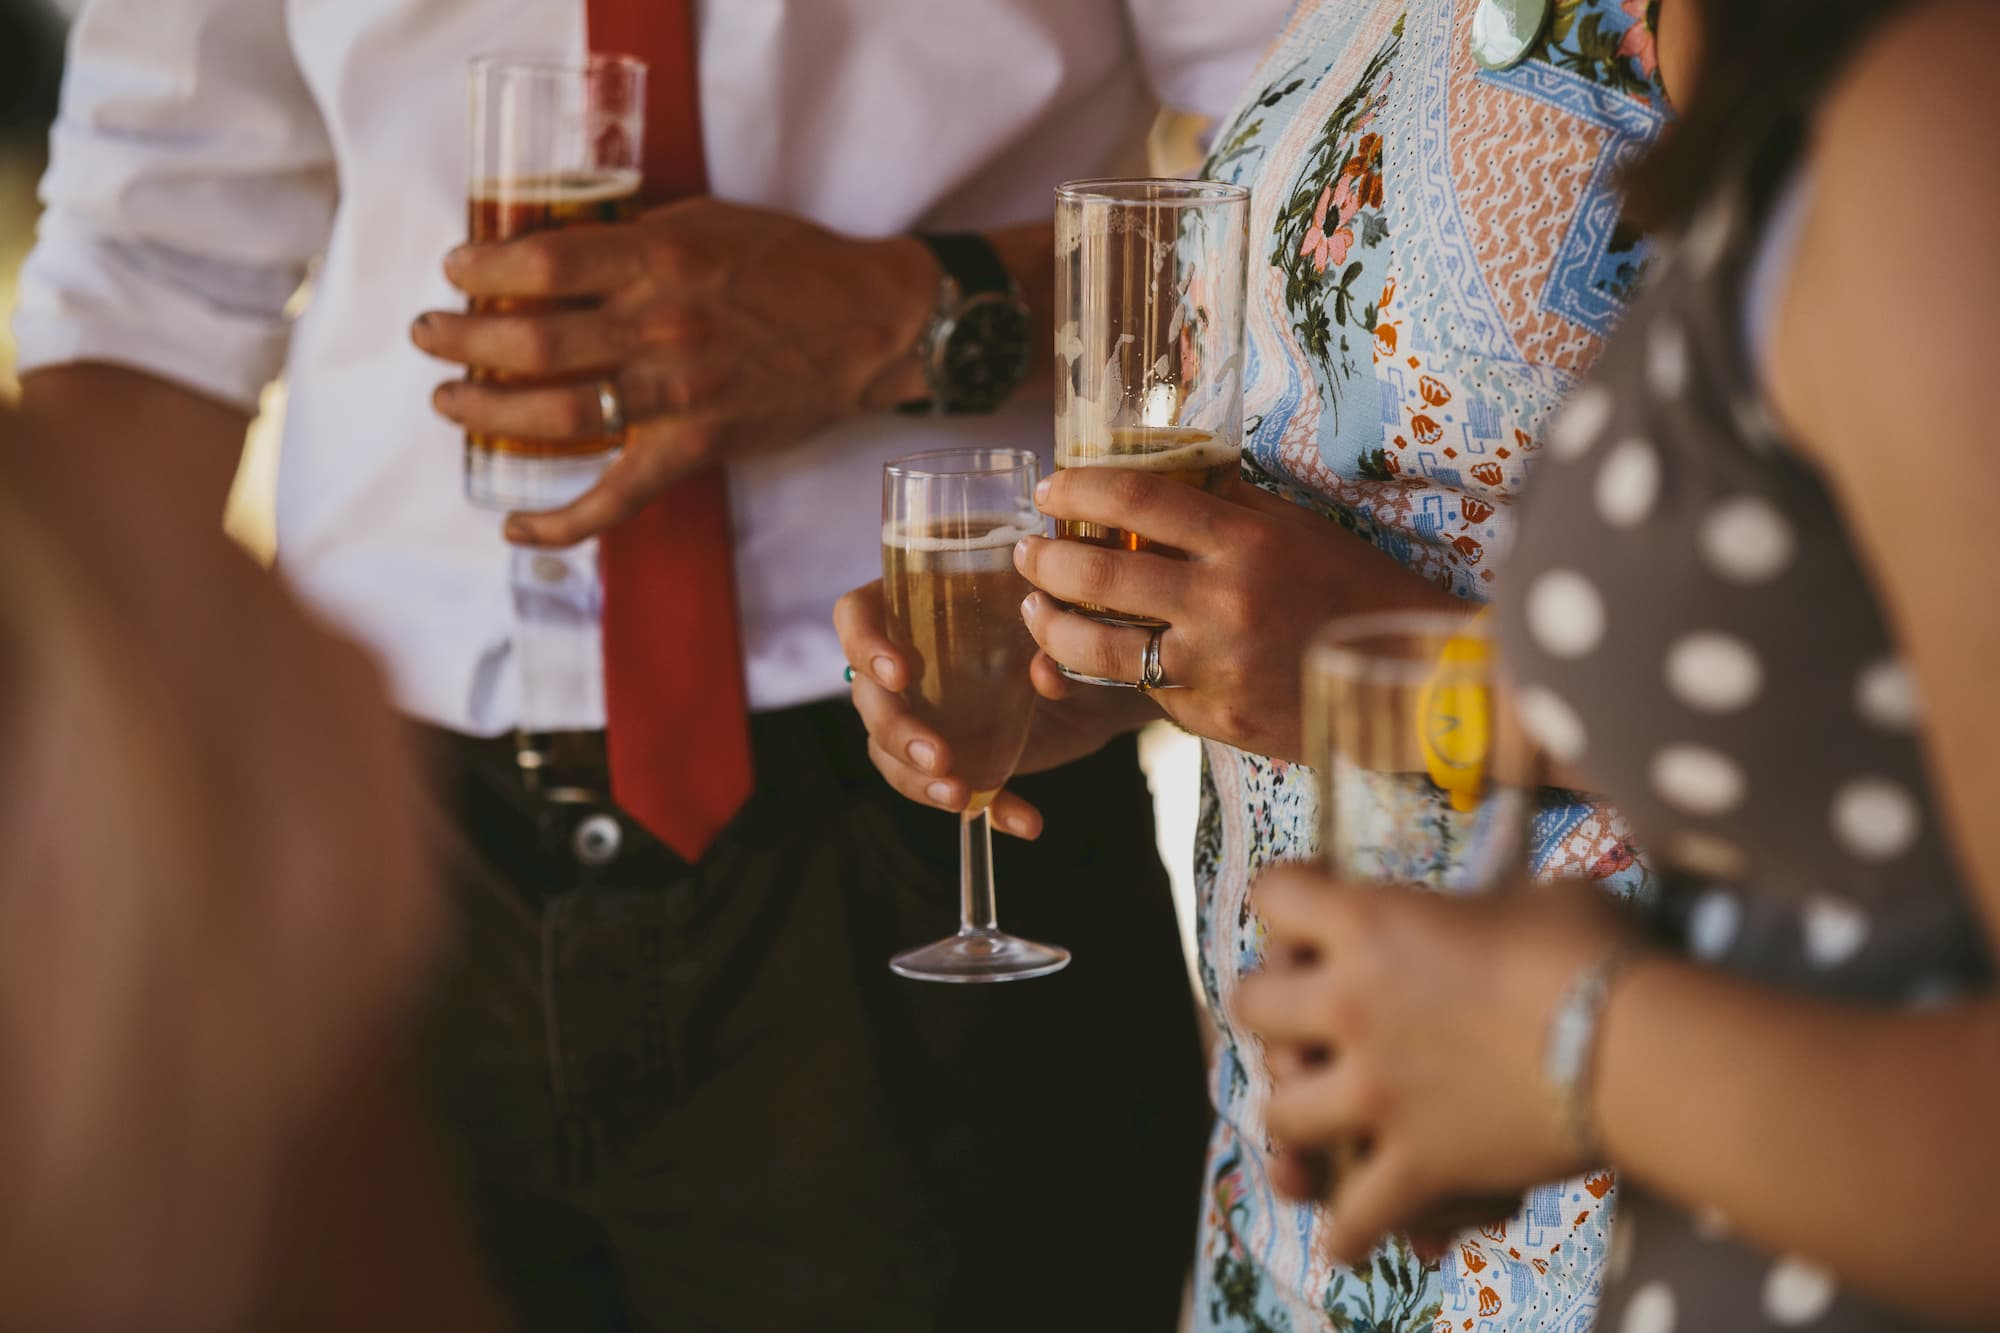 Holding champagne at a wedding